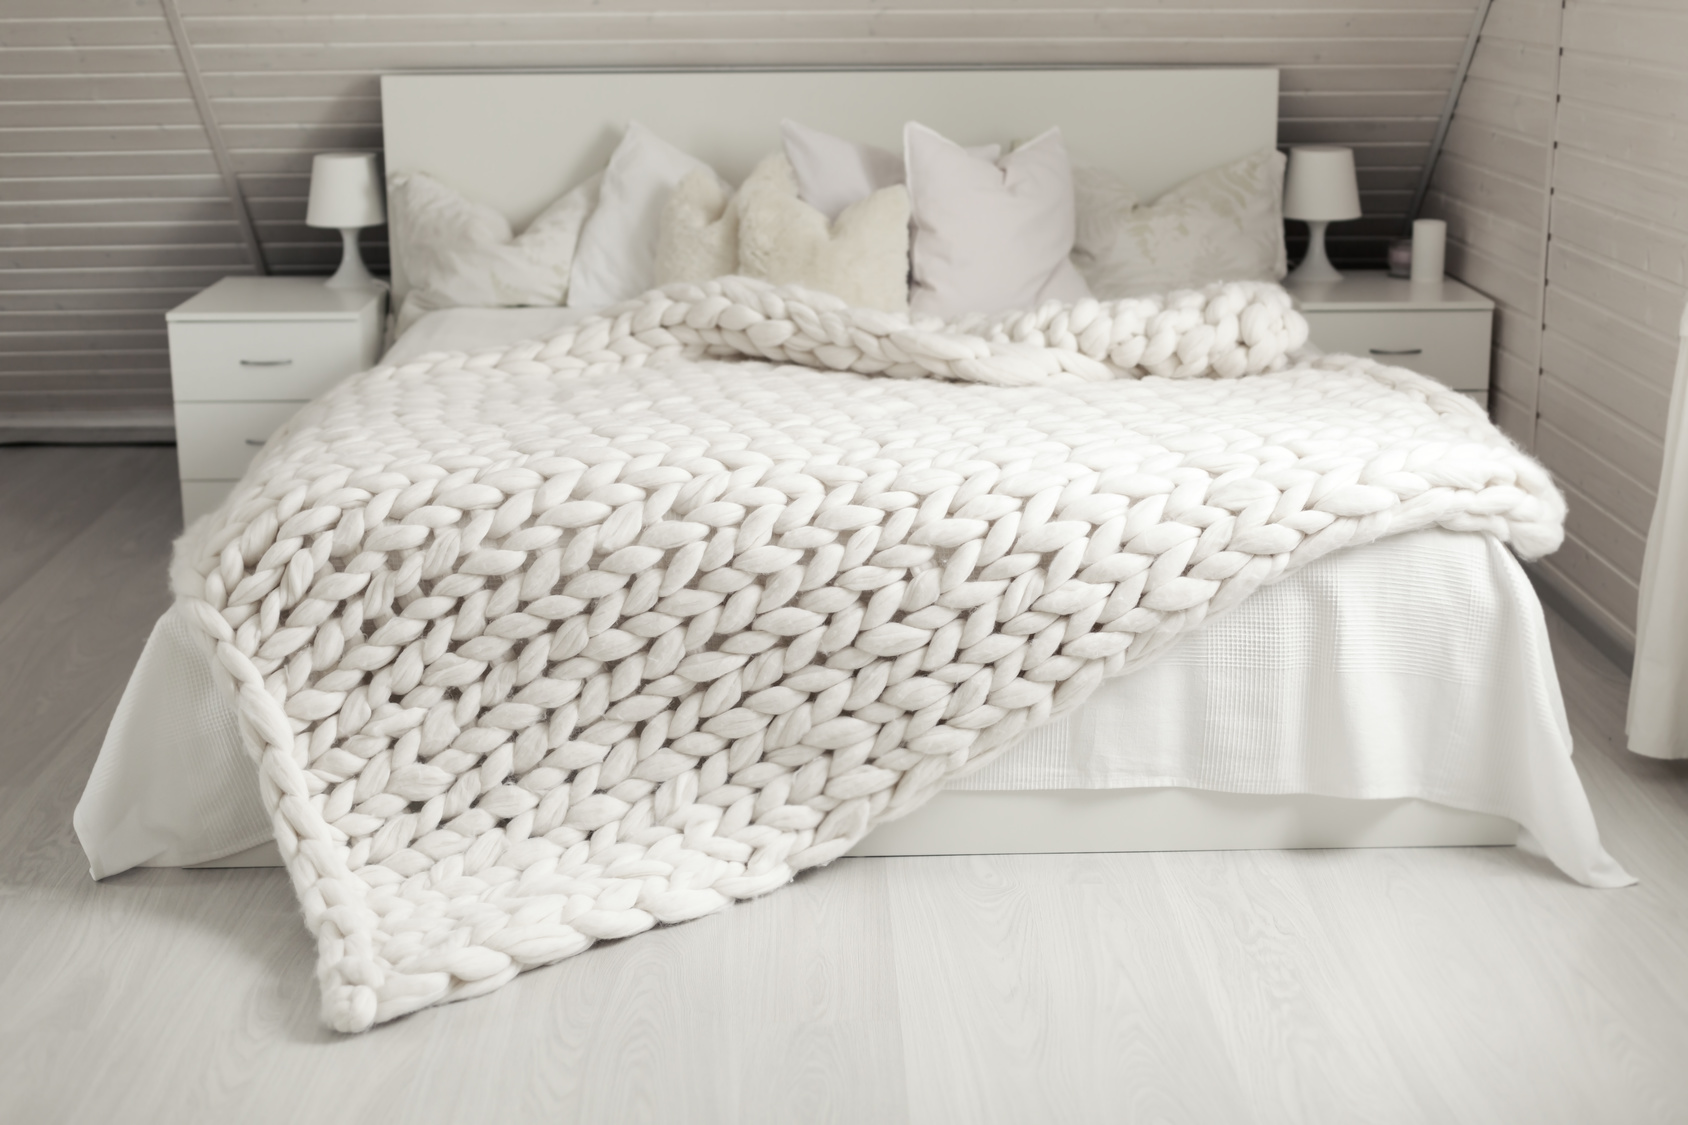 How To Winterize Your Bedroom For Better Sleep